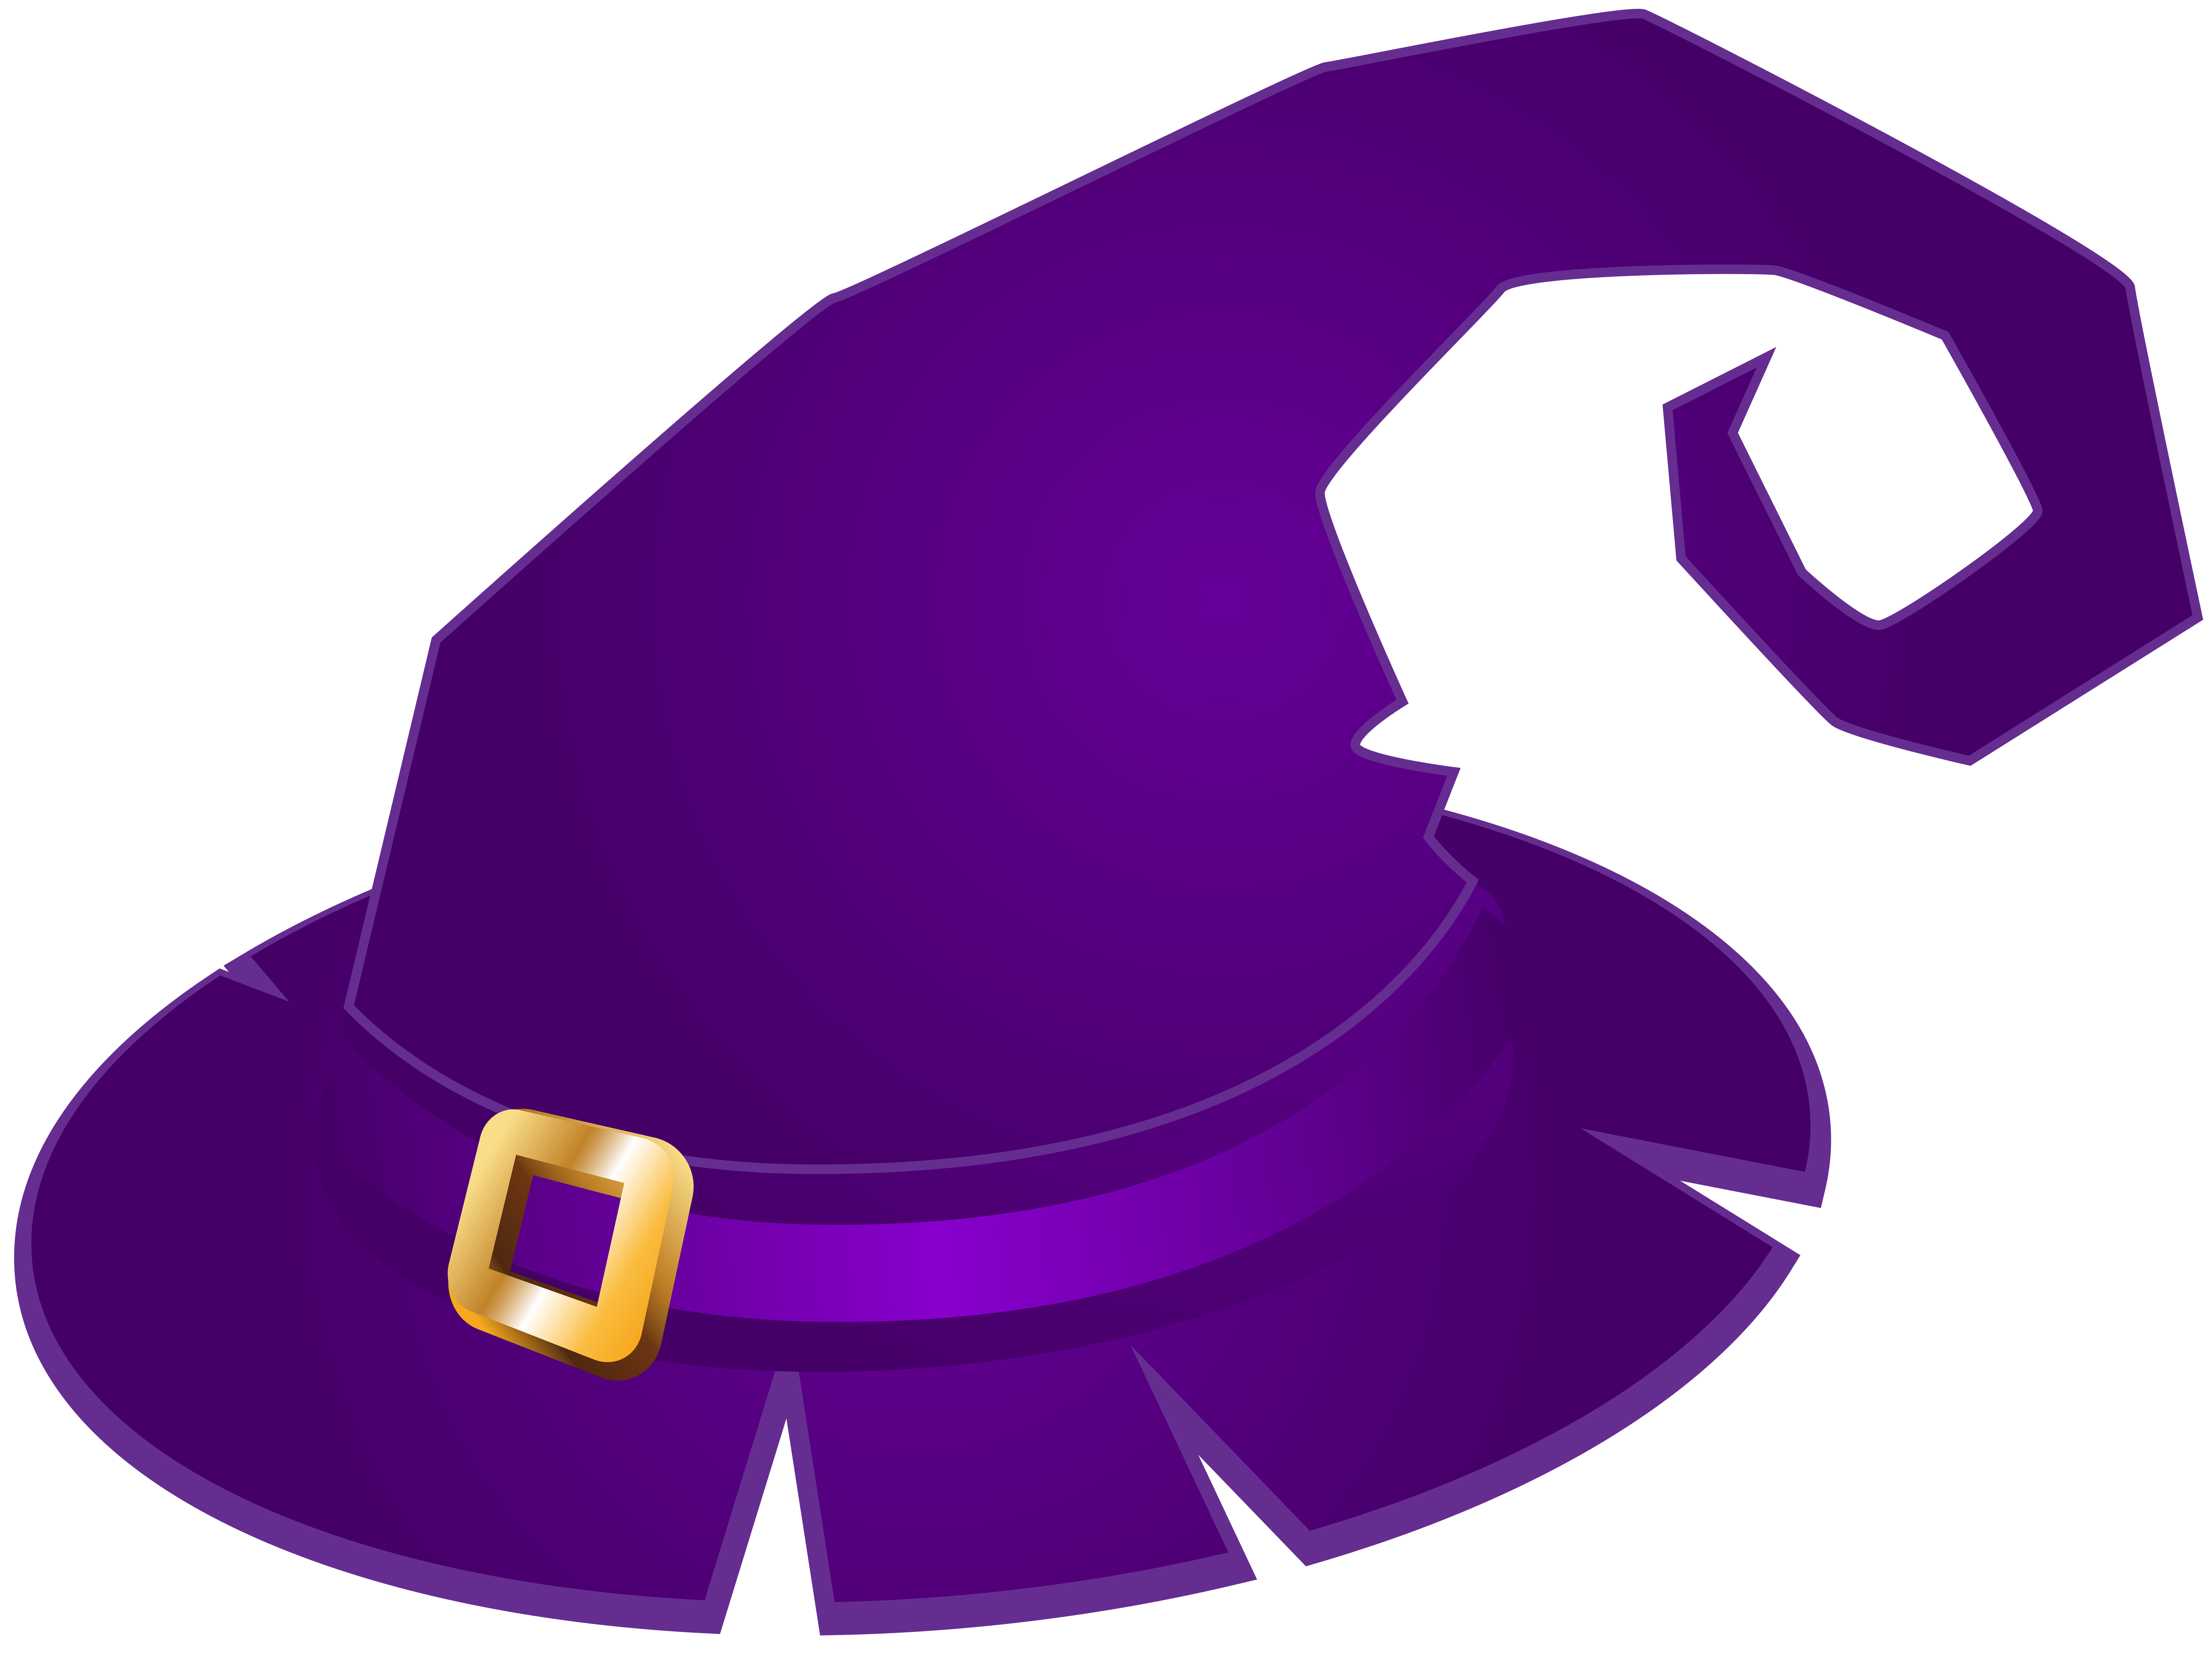 Clipart halloween purple. Witch hat transparent png